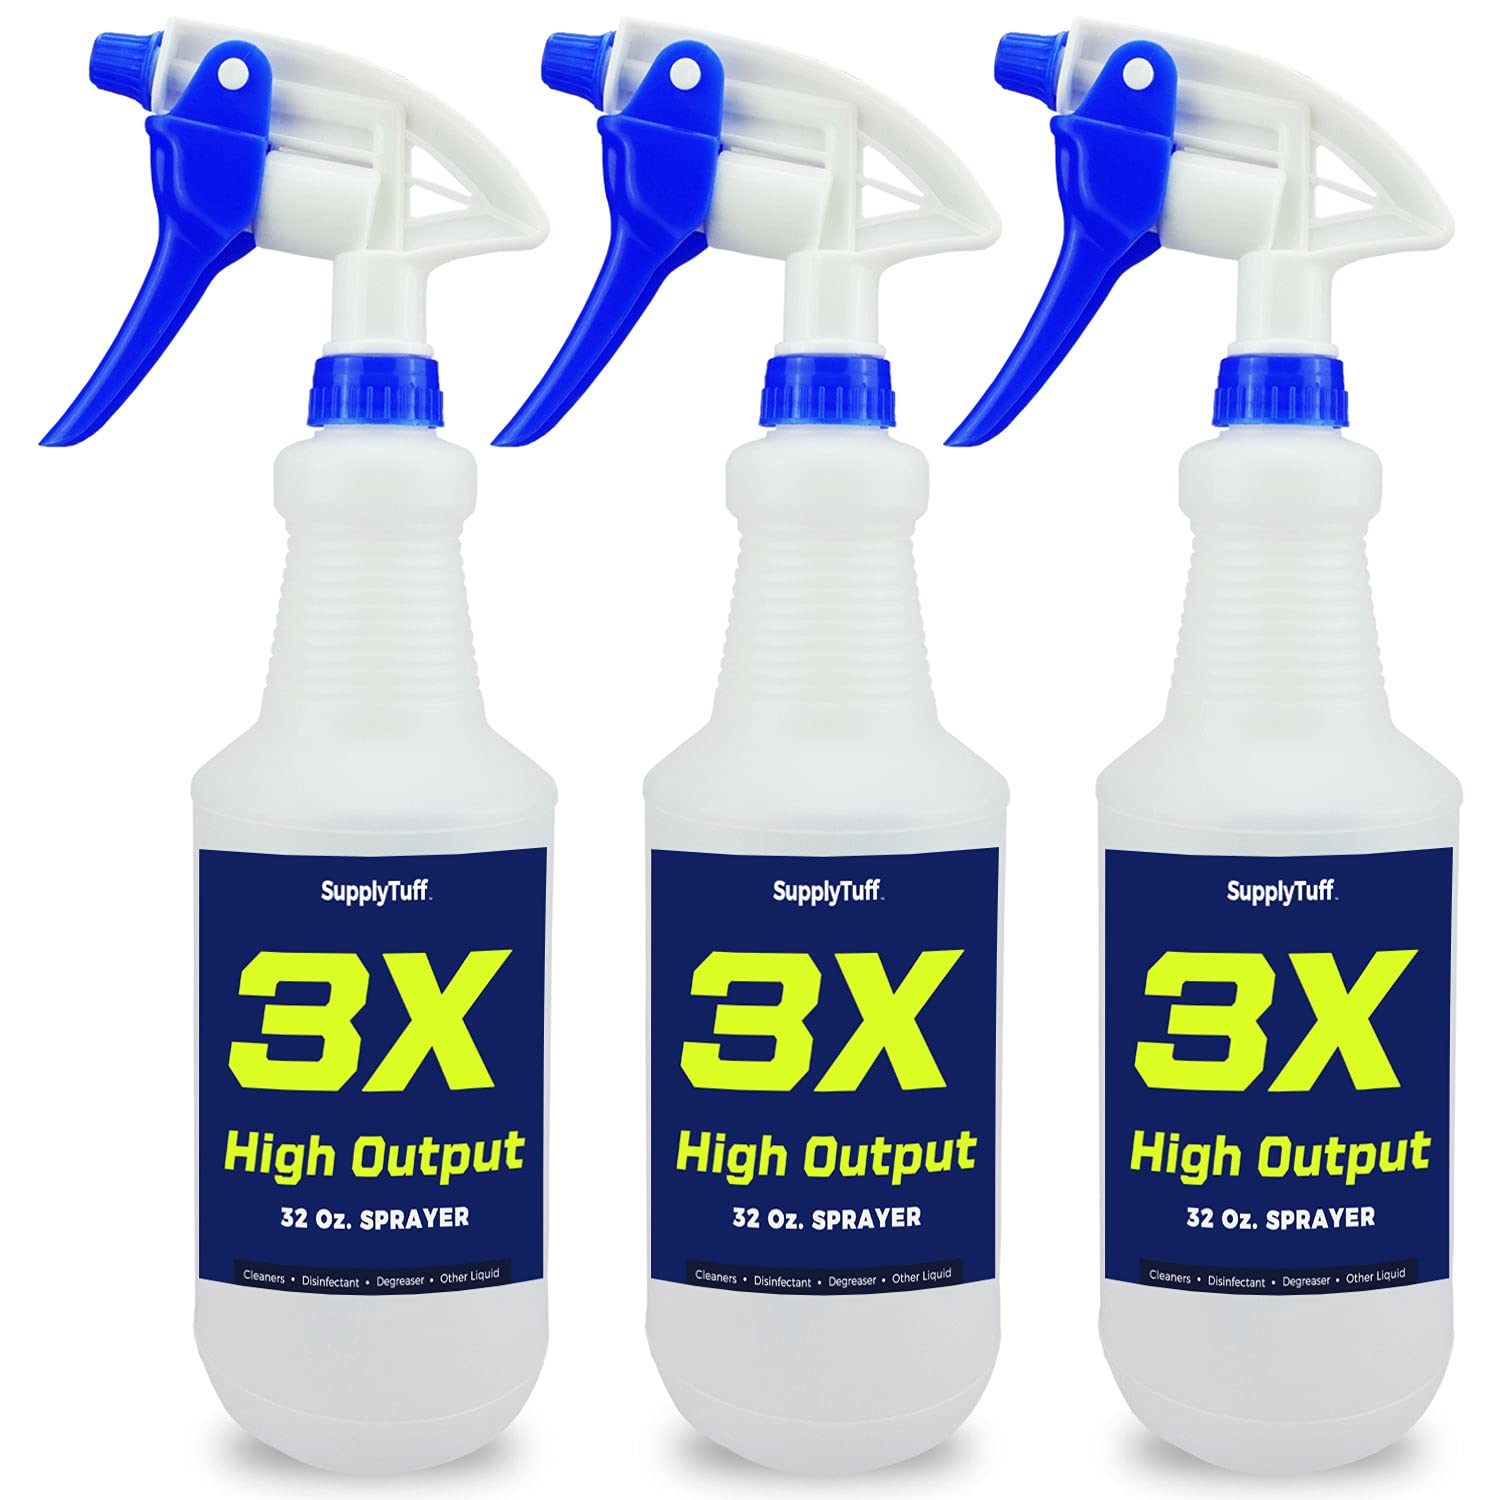 SupplyTuff 3X High Output Colorado Springs Nippon regular agency Mall Heavy Cleaning Spray Bottles for Duty